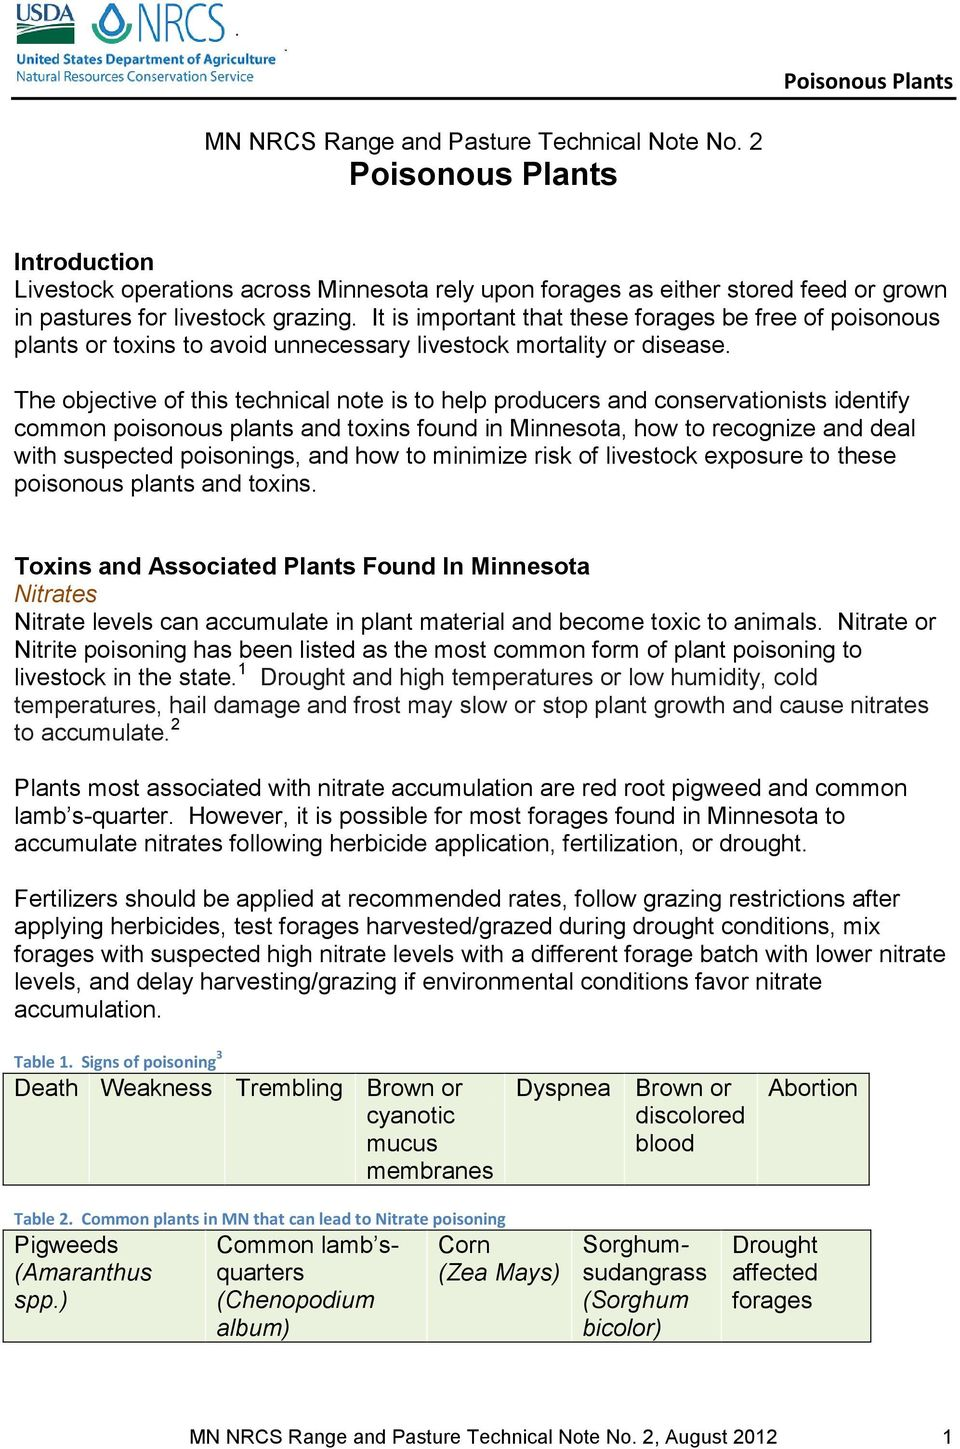 The objective of this technical note is to help producers and conservationists identify common poisonous plants and toxins found in Minnesota, how to recognize and deal with suspected poisonings, and